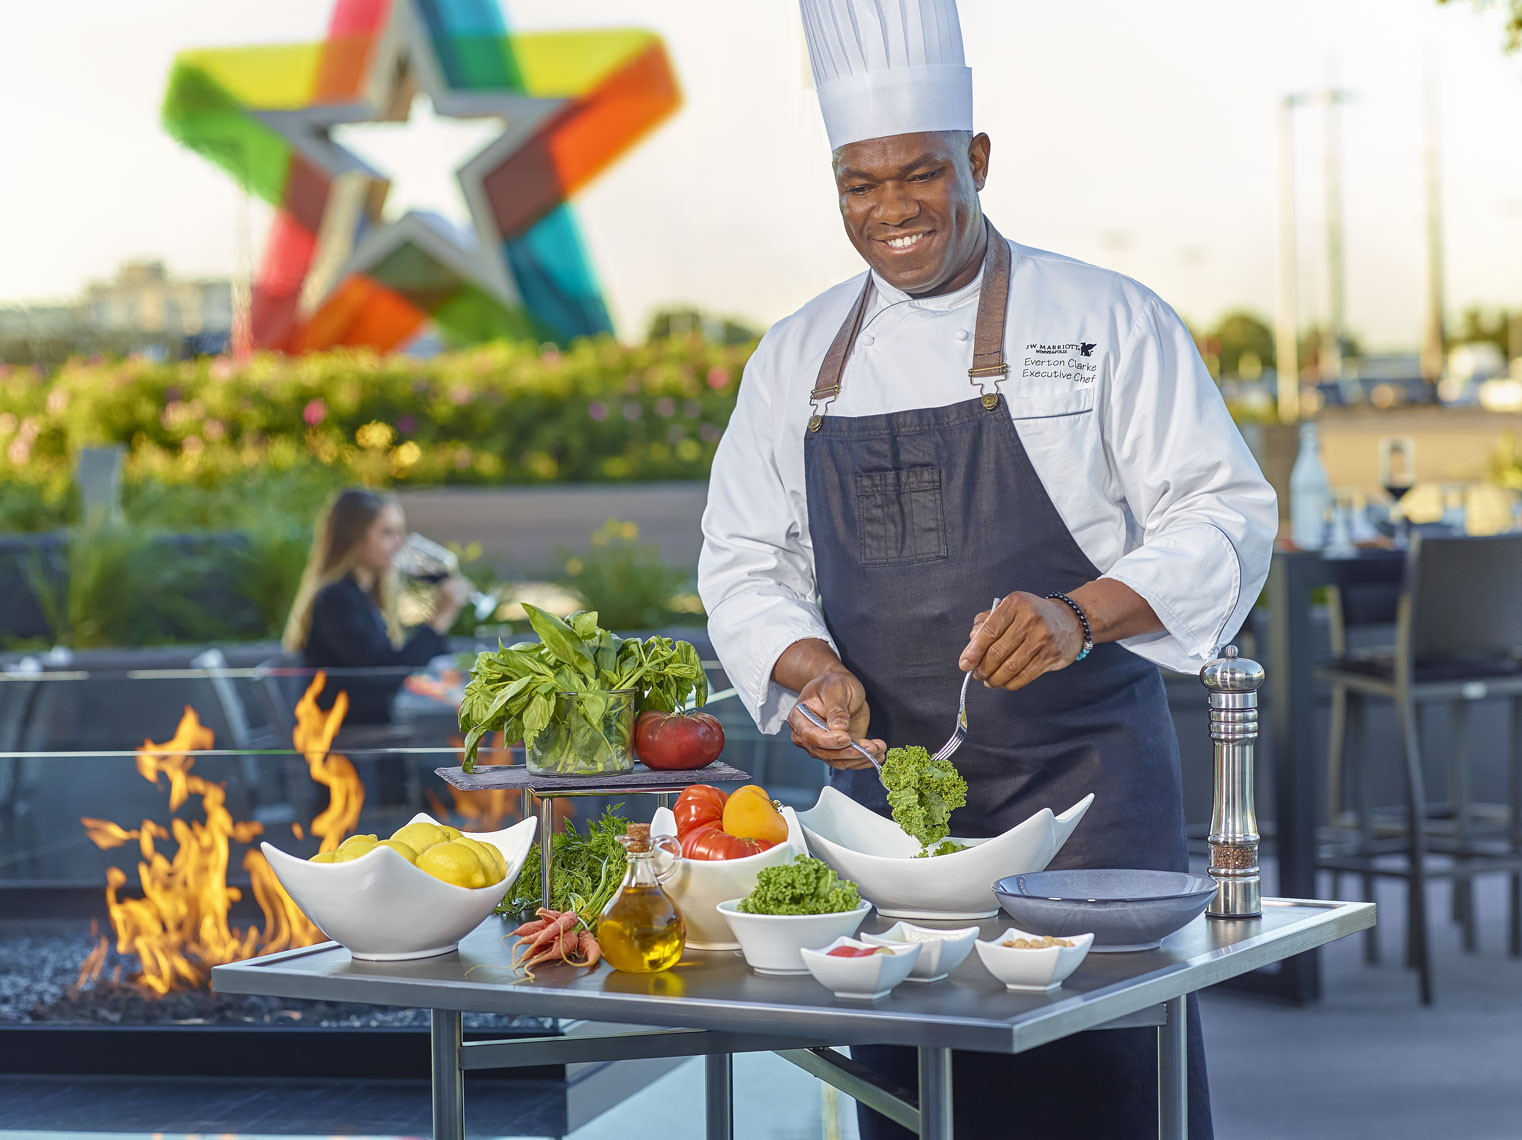 J-W-Marriott/chef/preparing salad/outside/grill/lifestyle photo